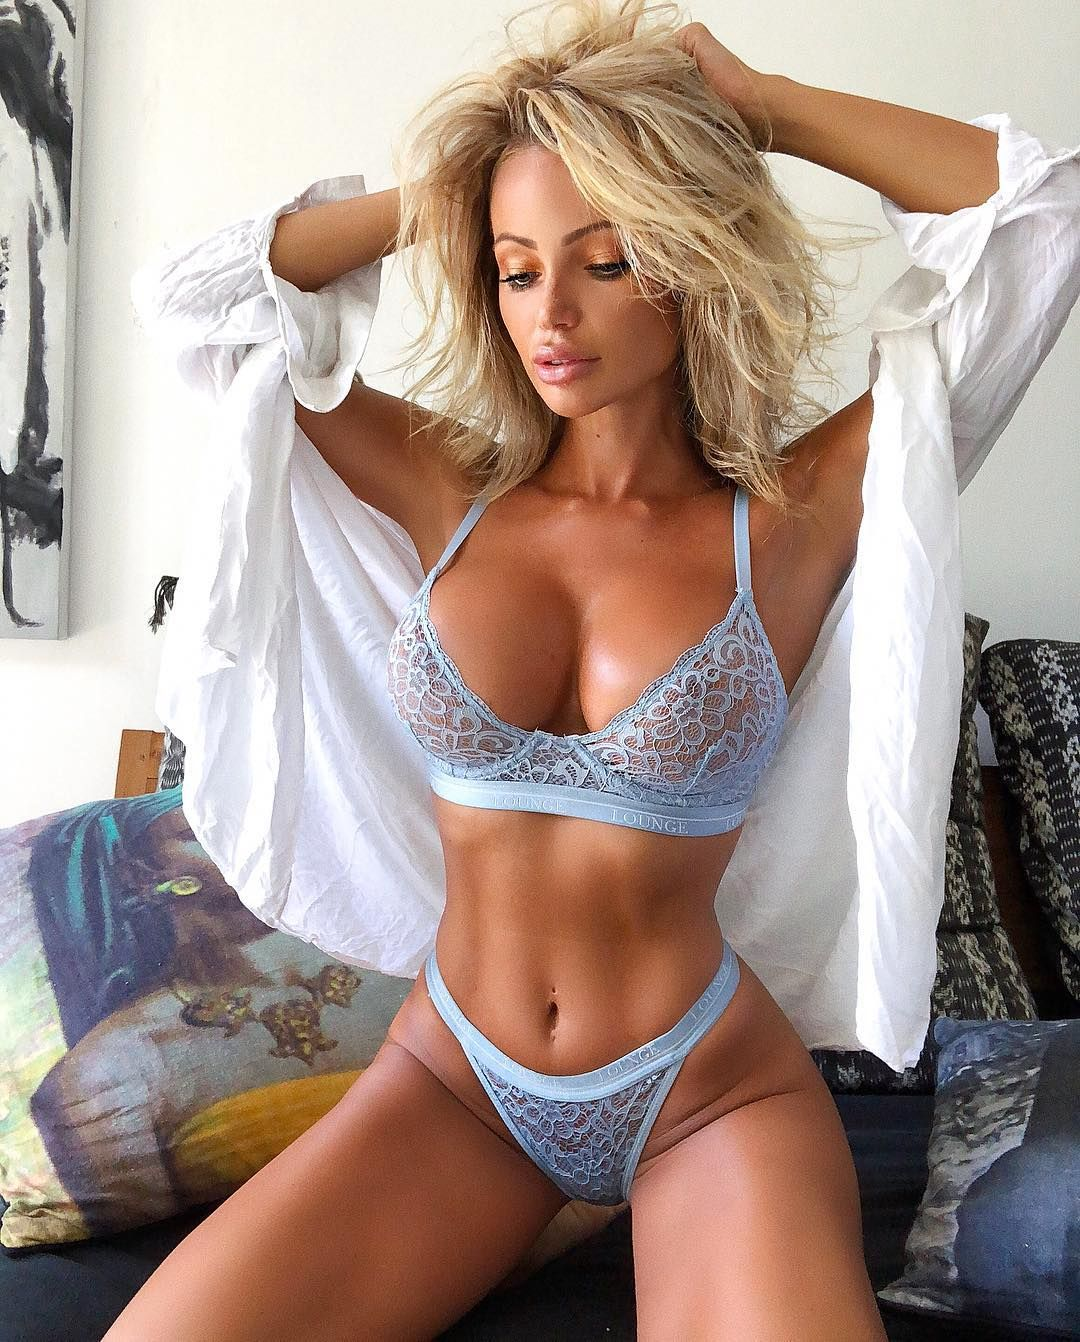 Video Abby Dowse nudes (86 photos), Leaked